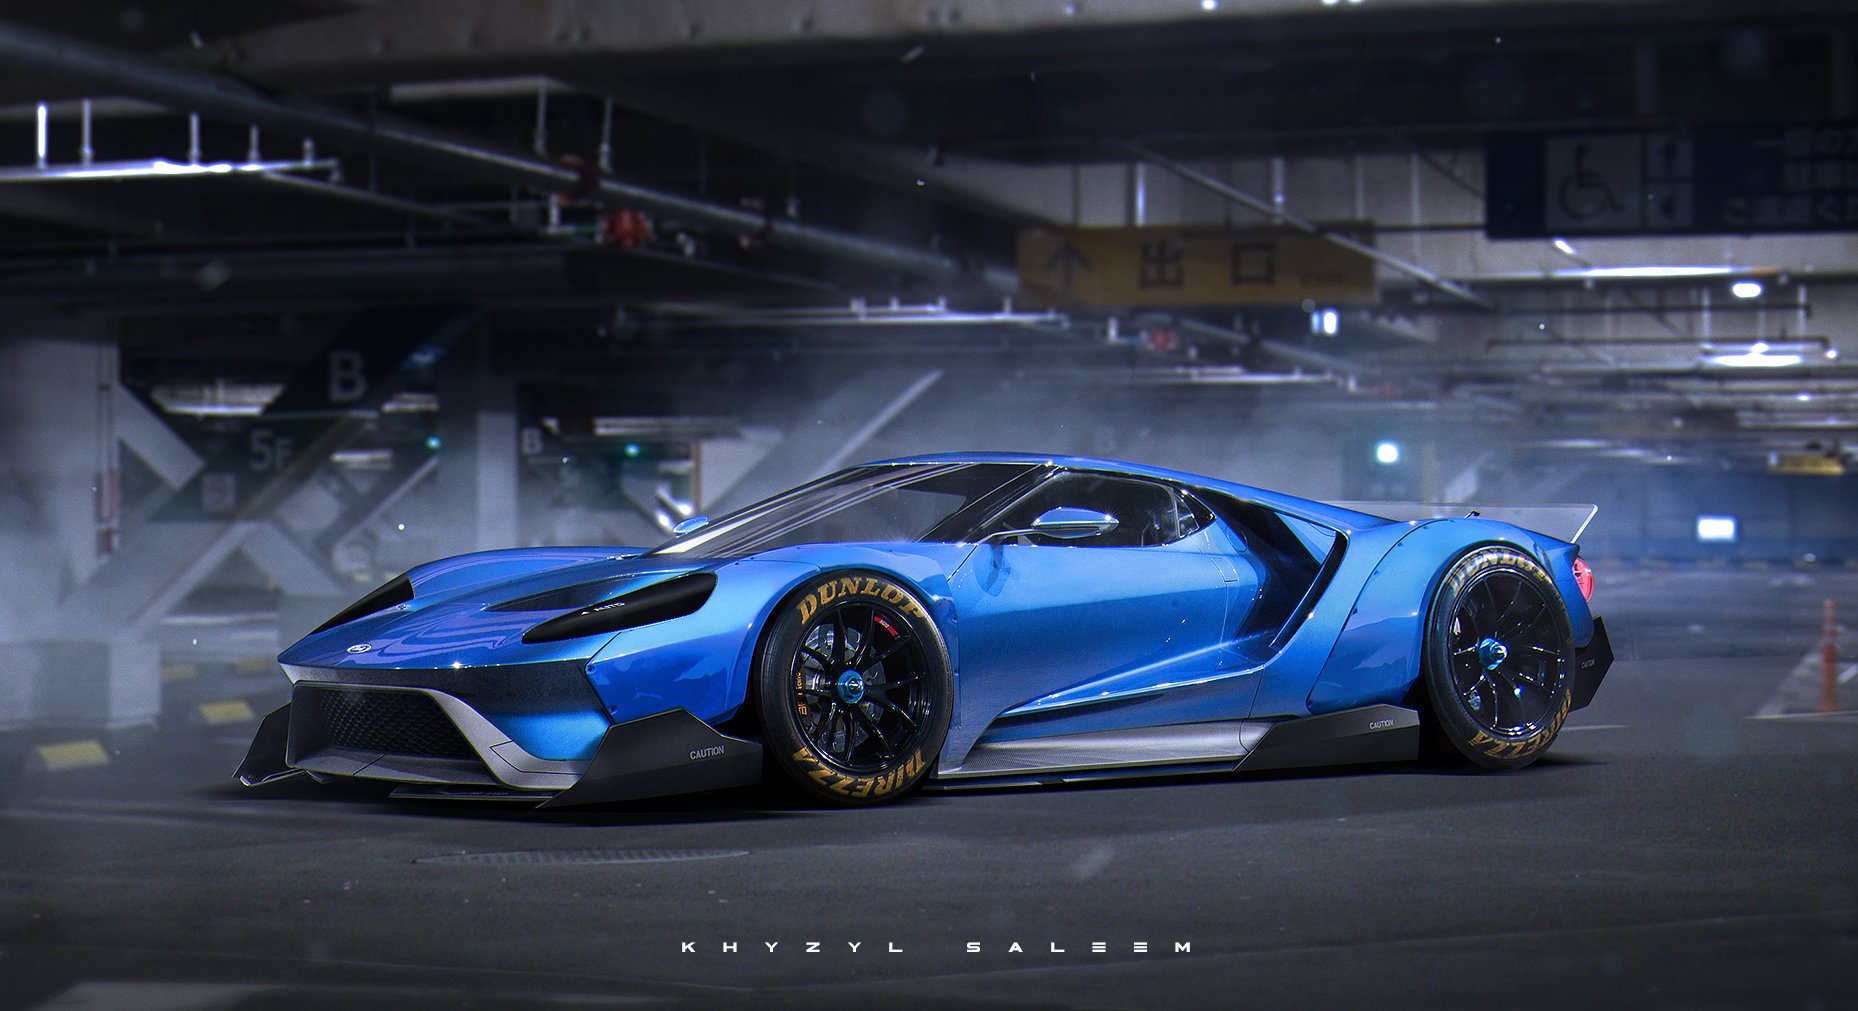 Index likewise 2017 Ford Gt Egoista Rendering Has Liberty Walk Widebody Kit 97705 furthermore Jb Classics Lab X Sneaker Pimps furthermore 2002 Bmw E46 M3 Carbon Black Csl Style additionally 2016 Mazda Miata Gets Rocket Bunny Wide Bodykit Goes Extremely Wild 103280. on e30 diffuser